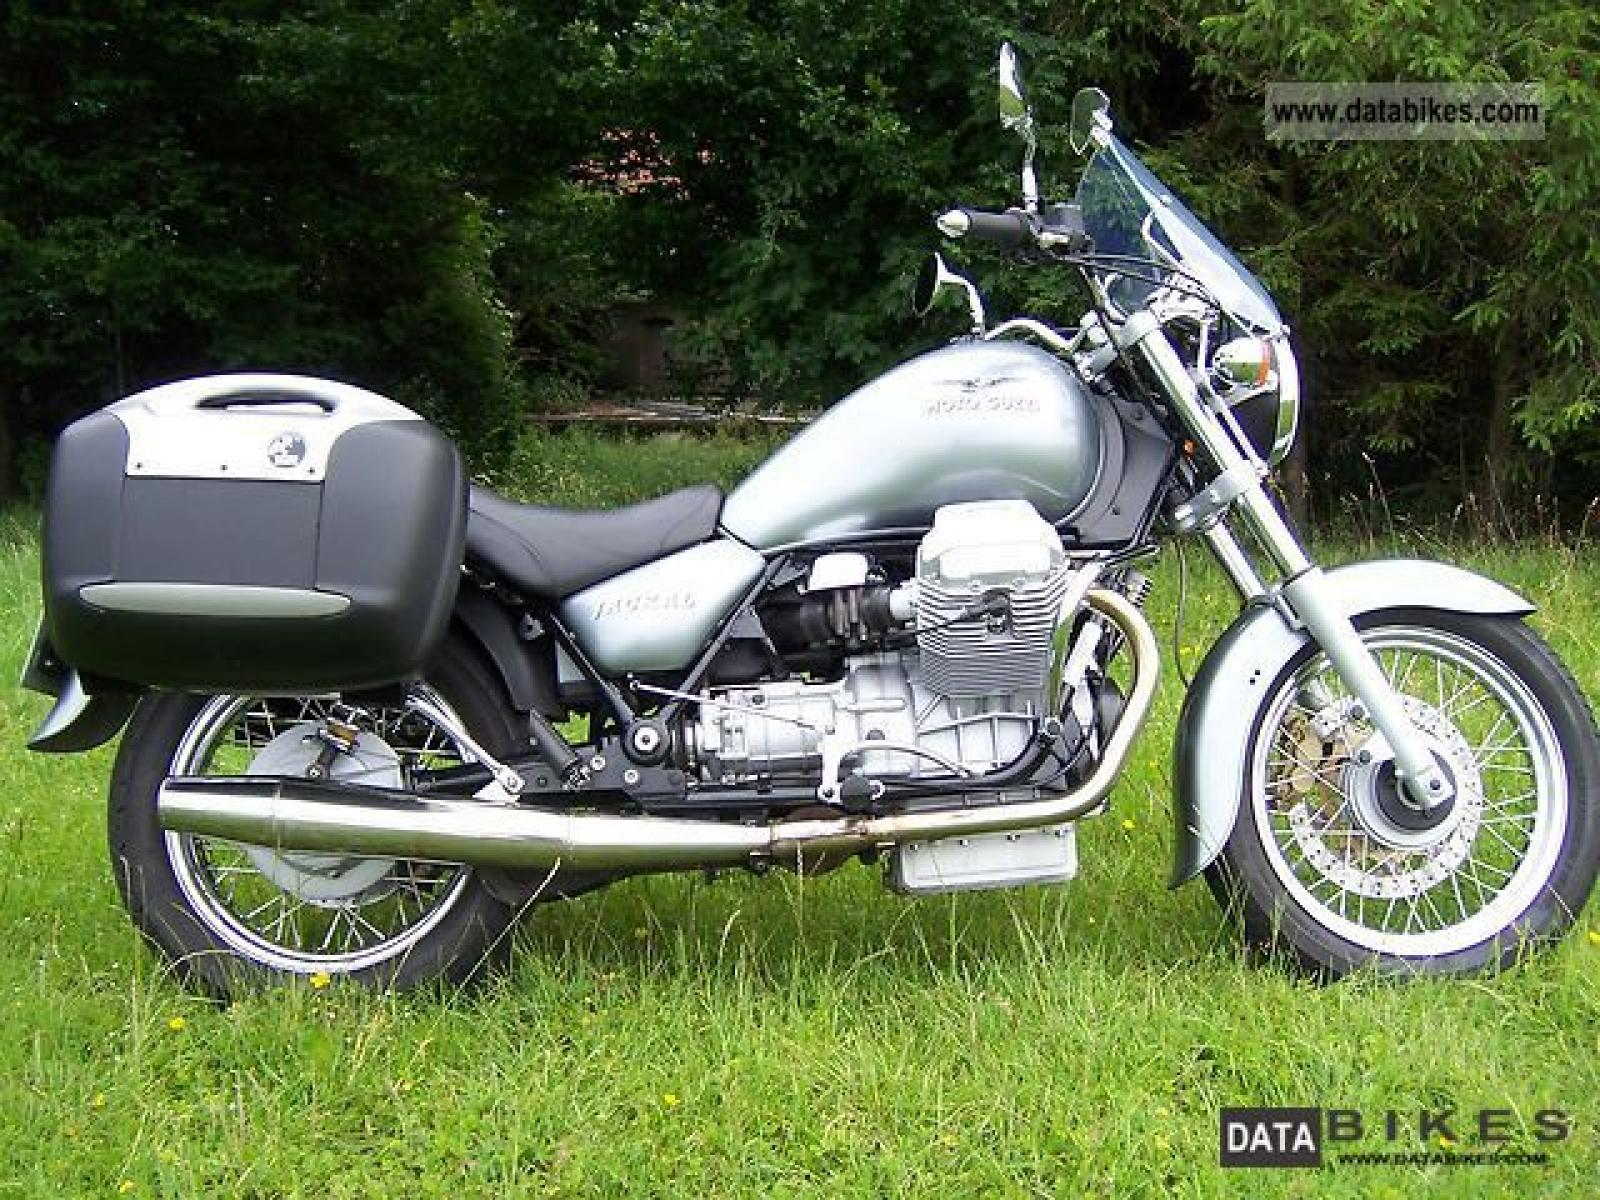 Moto Guzzi California Jackal 2001 images #109131